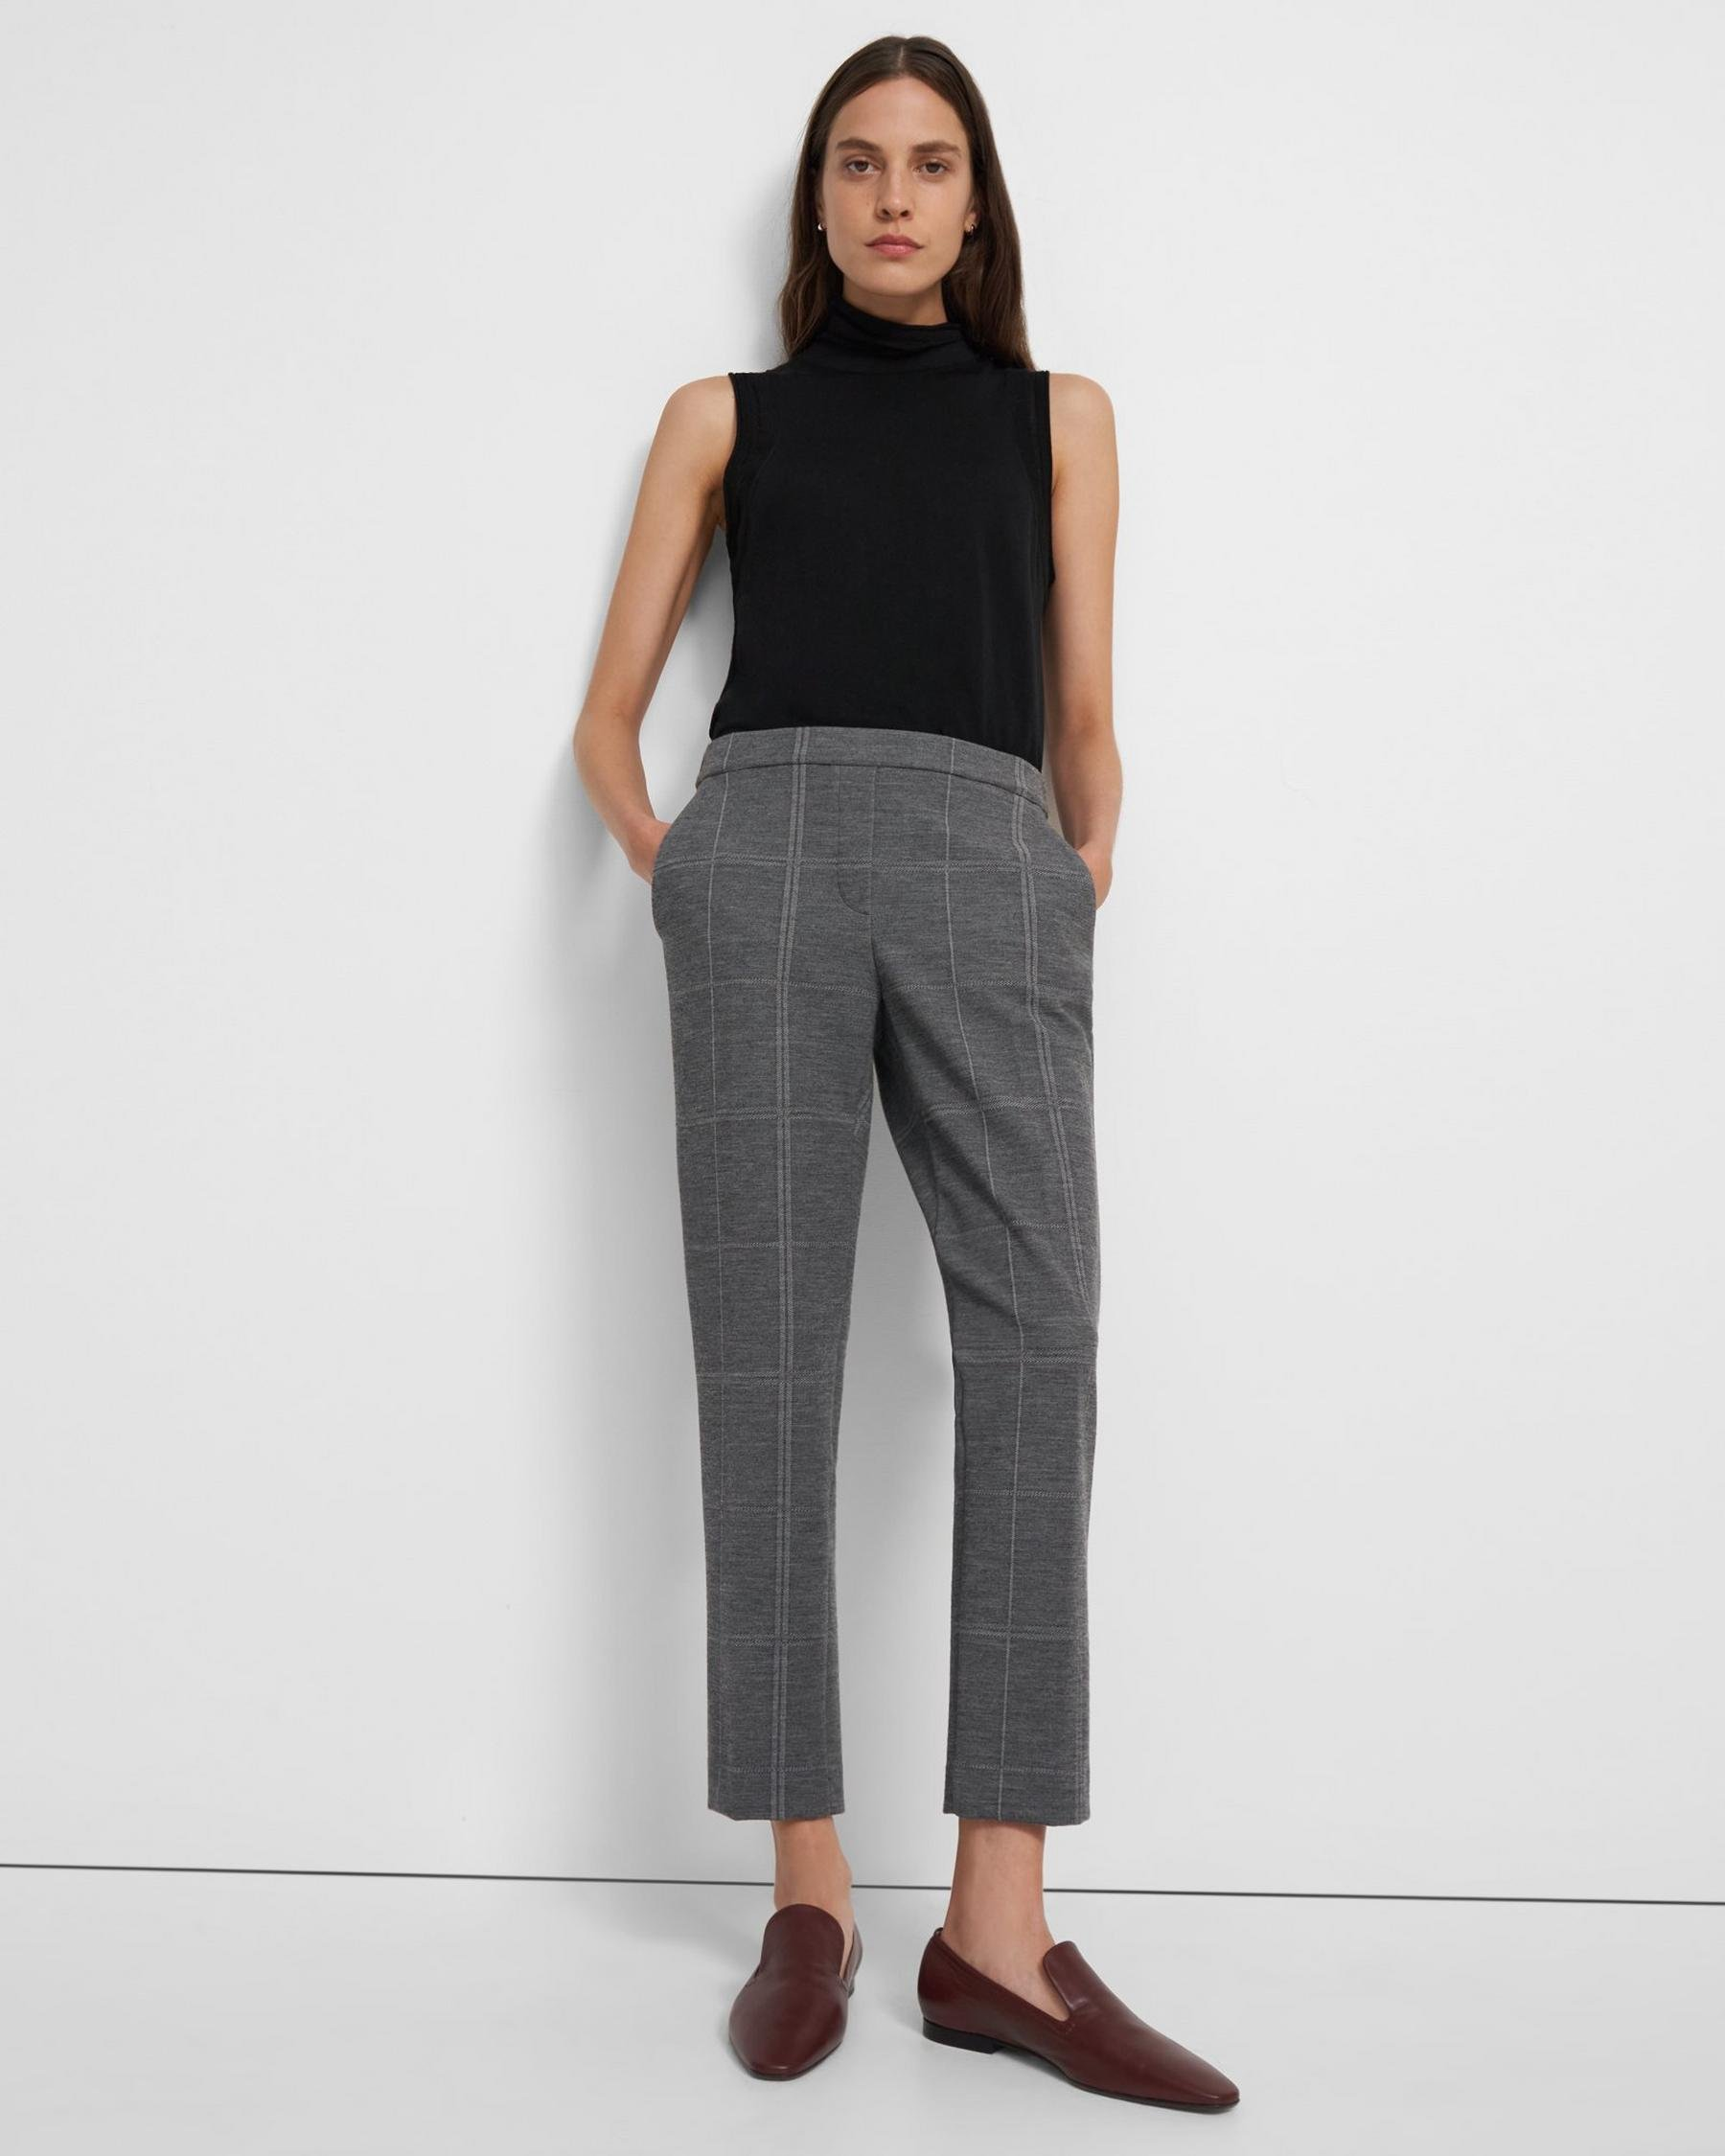 Treeca Pull-On Pant in Checked Eco Knit